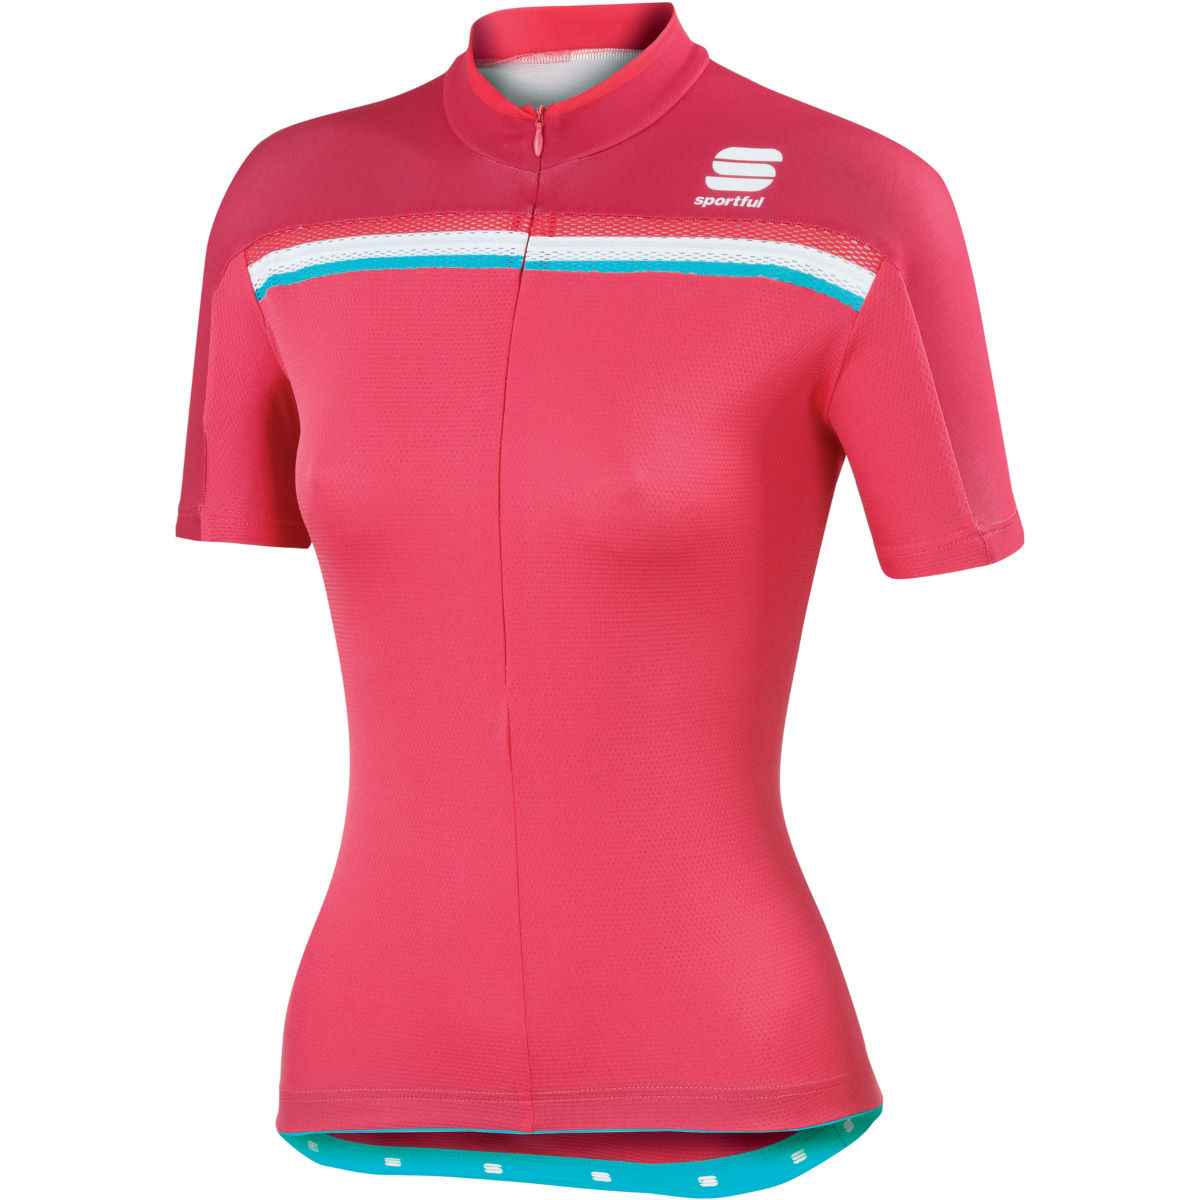 Maillot Femme Sportful Allure (PE16) - S Rose Maillots